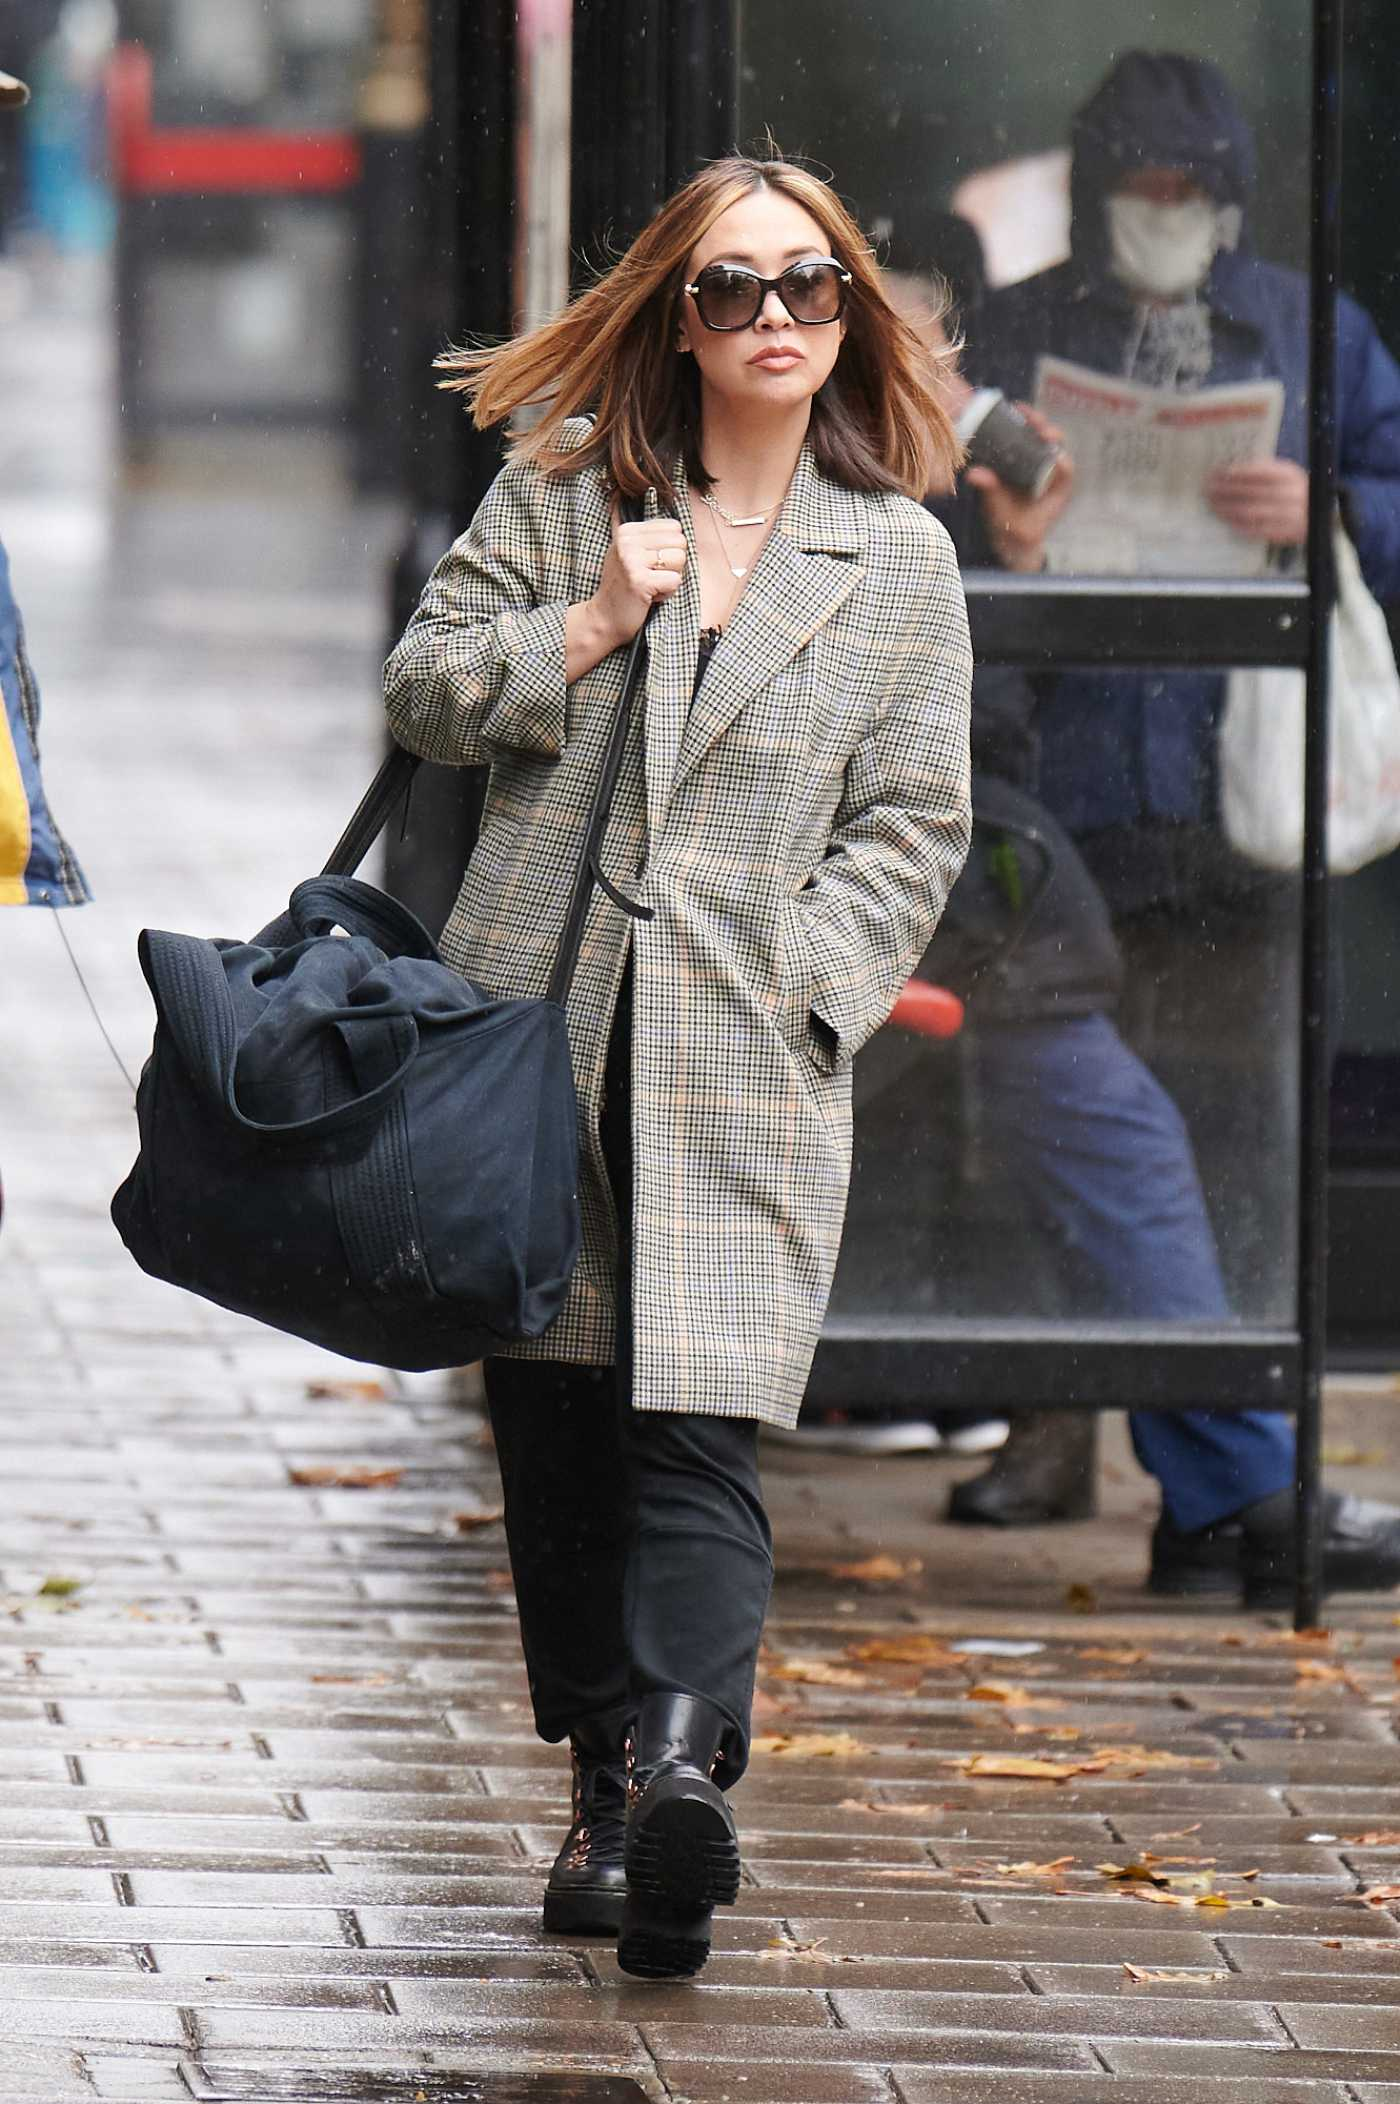 Myleene Klass in a Grey Trench Coat Arrives at the Global Studios in London 10/29/2020